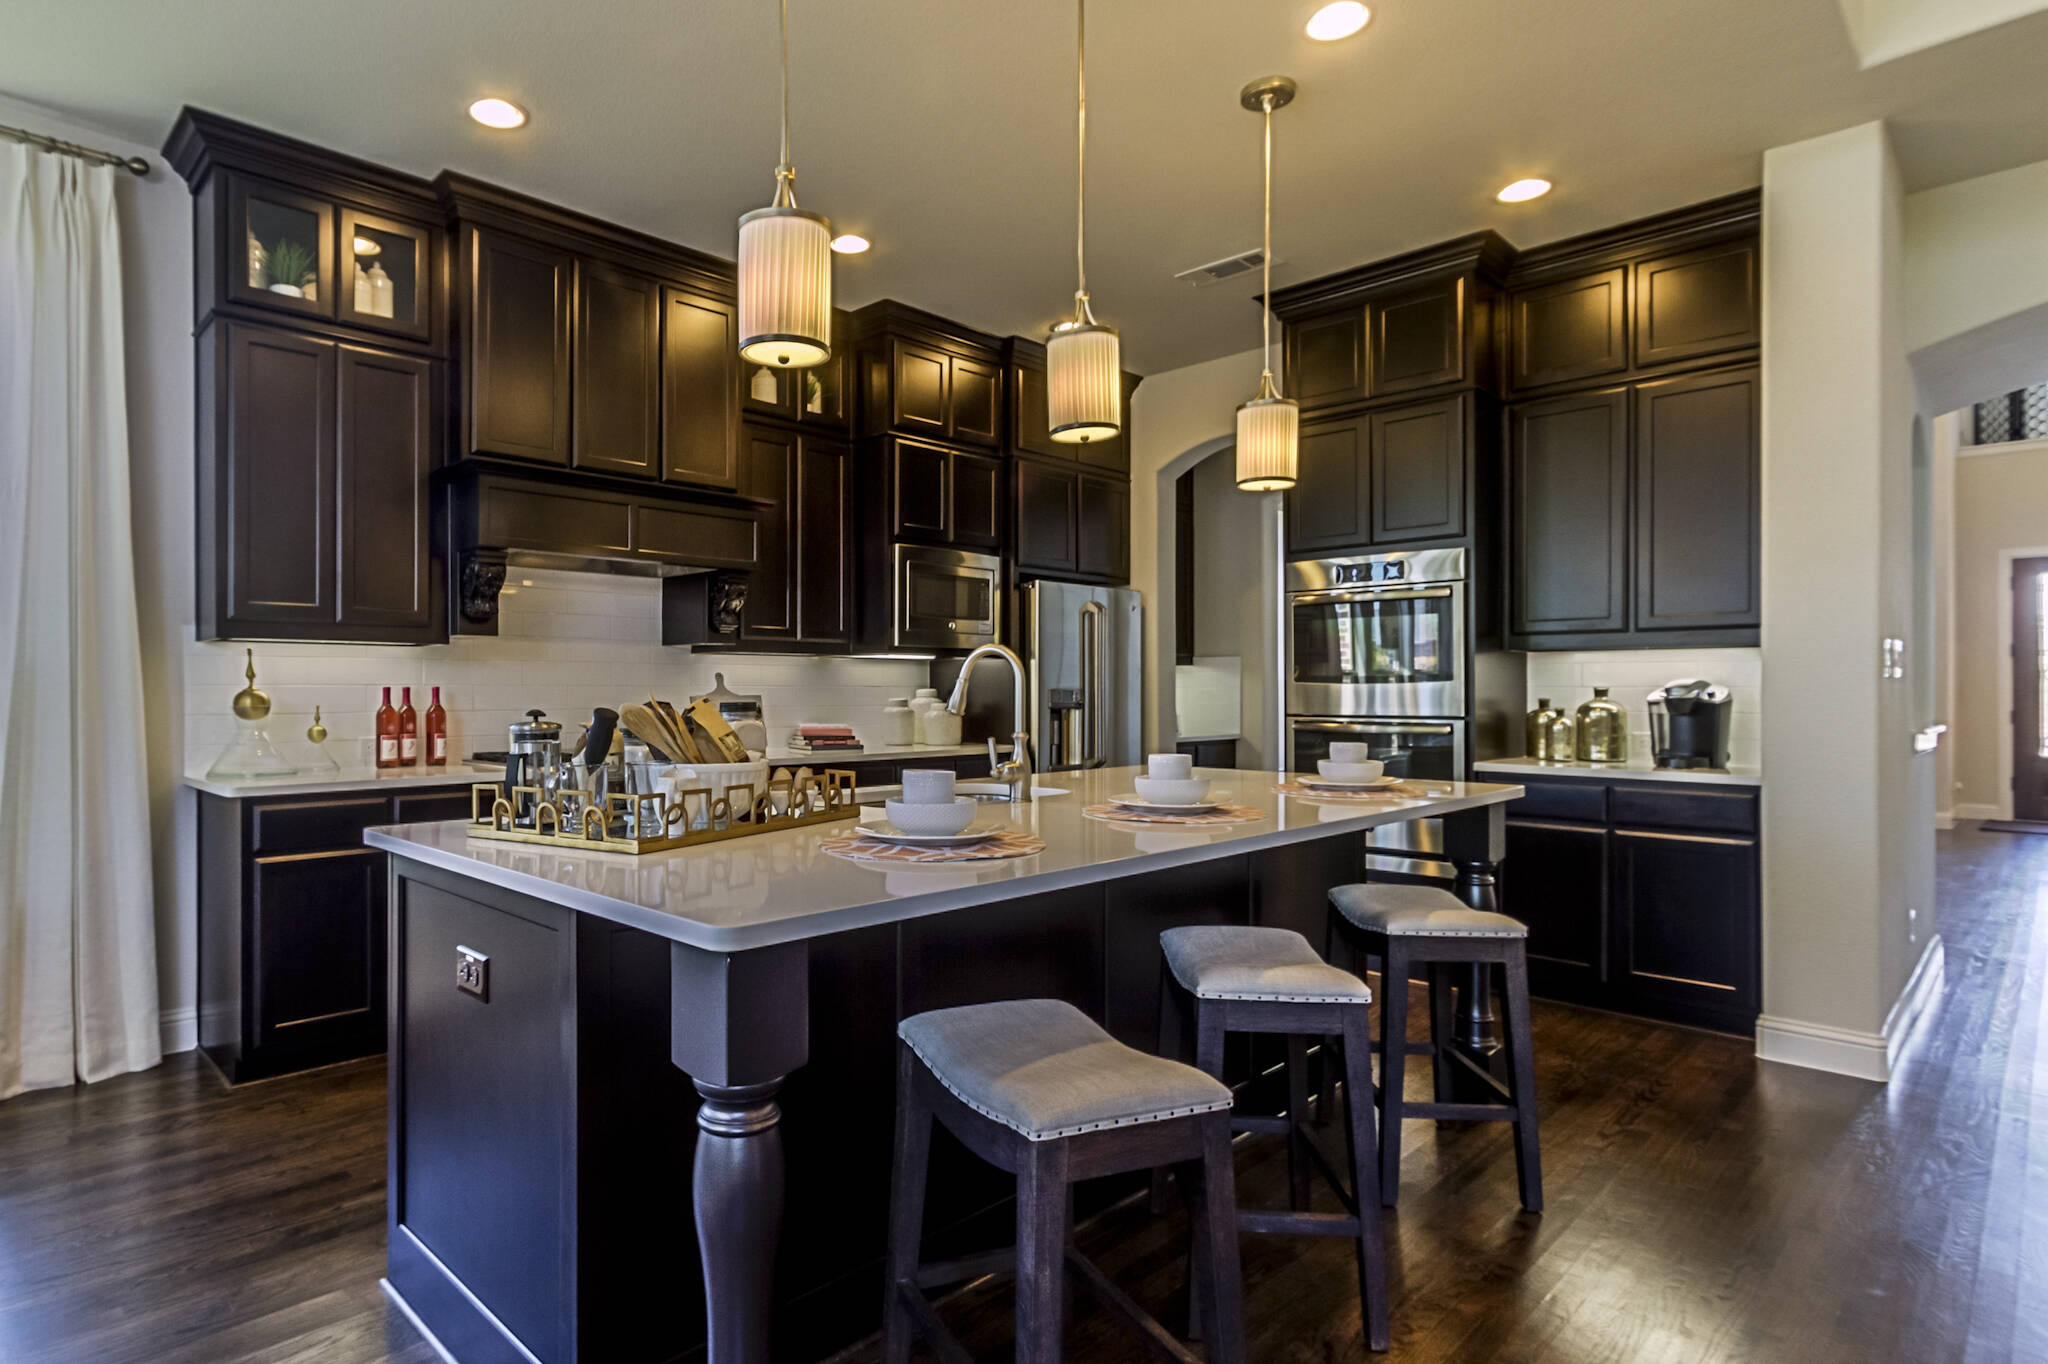 kitchen-ridgeviewmodel-glenwoodvi-dfw-txm-thumbnailC